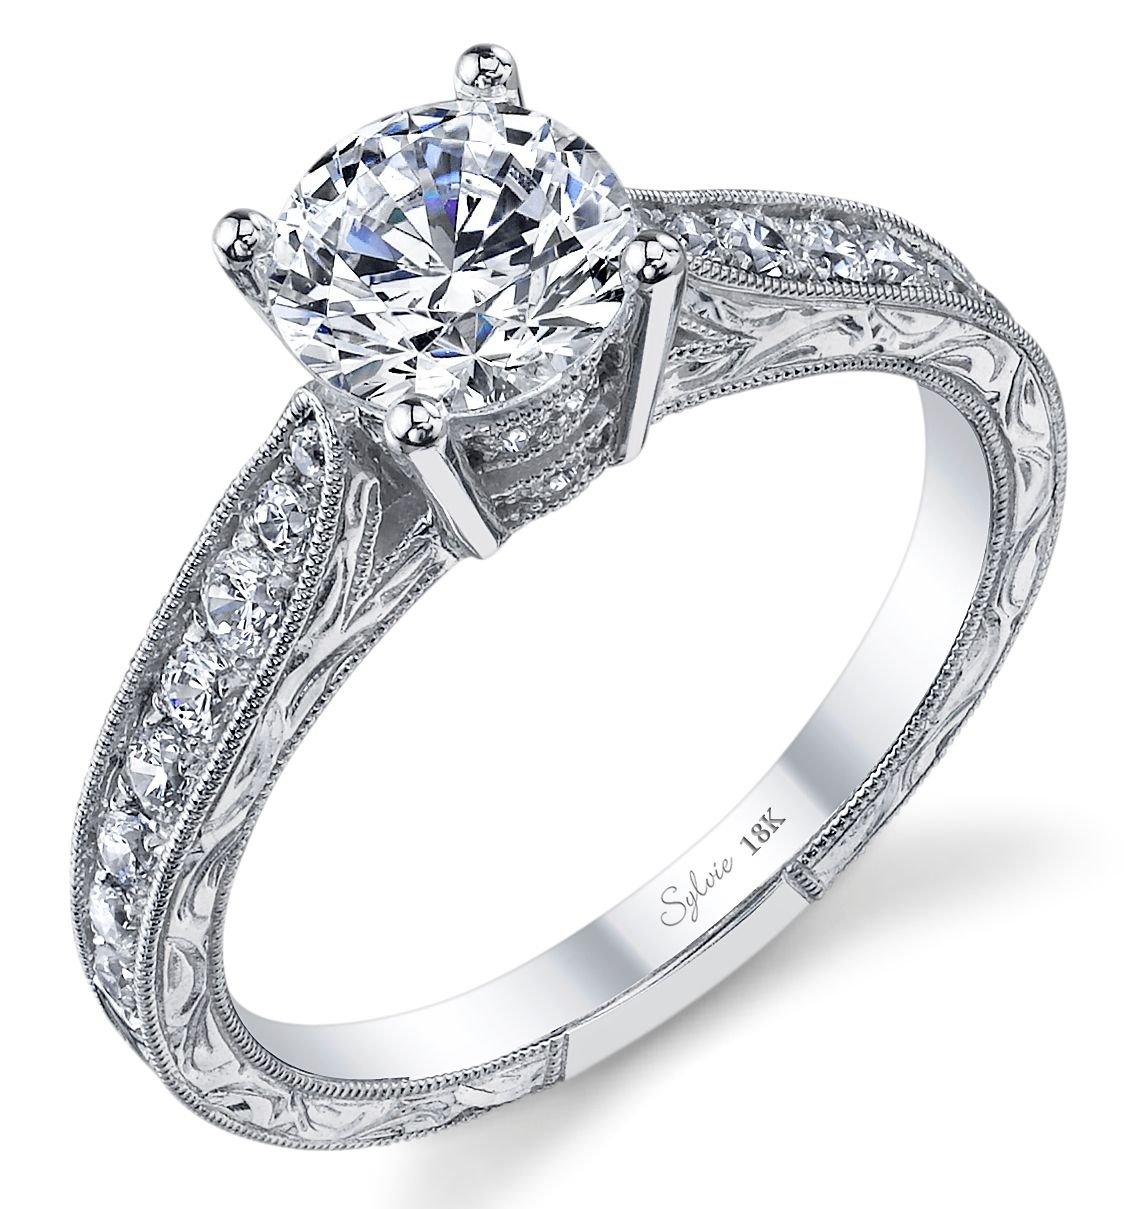 Amitie Collection Rings Sylvie Collection Engraved Engagement Ring Round Diamond Engagement Rings Antique Wedding Rings